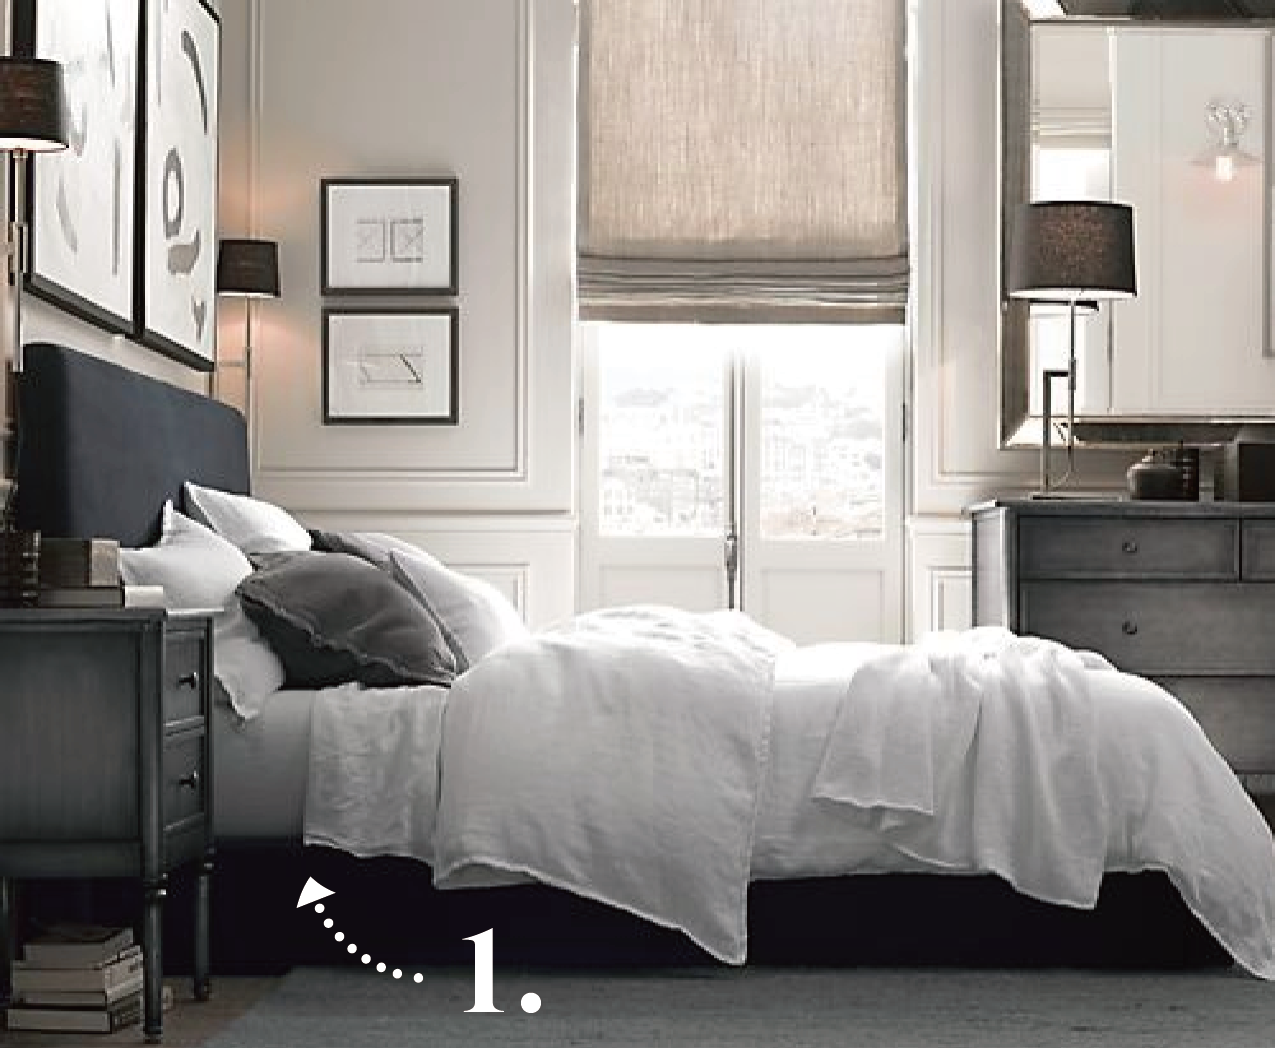 Restoration hardware catalogue bedroom interiors blog for Bed rooms design